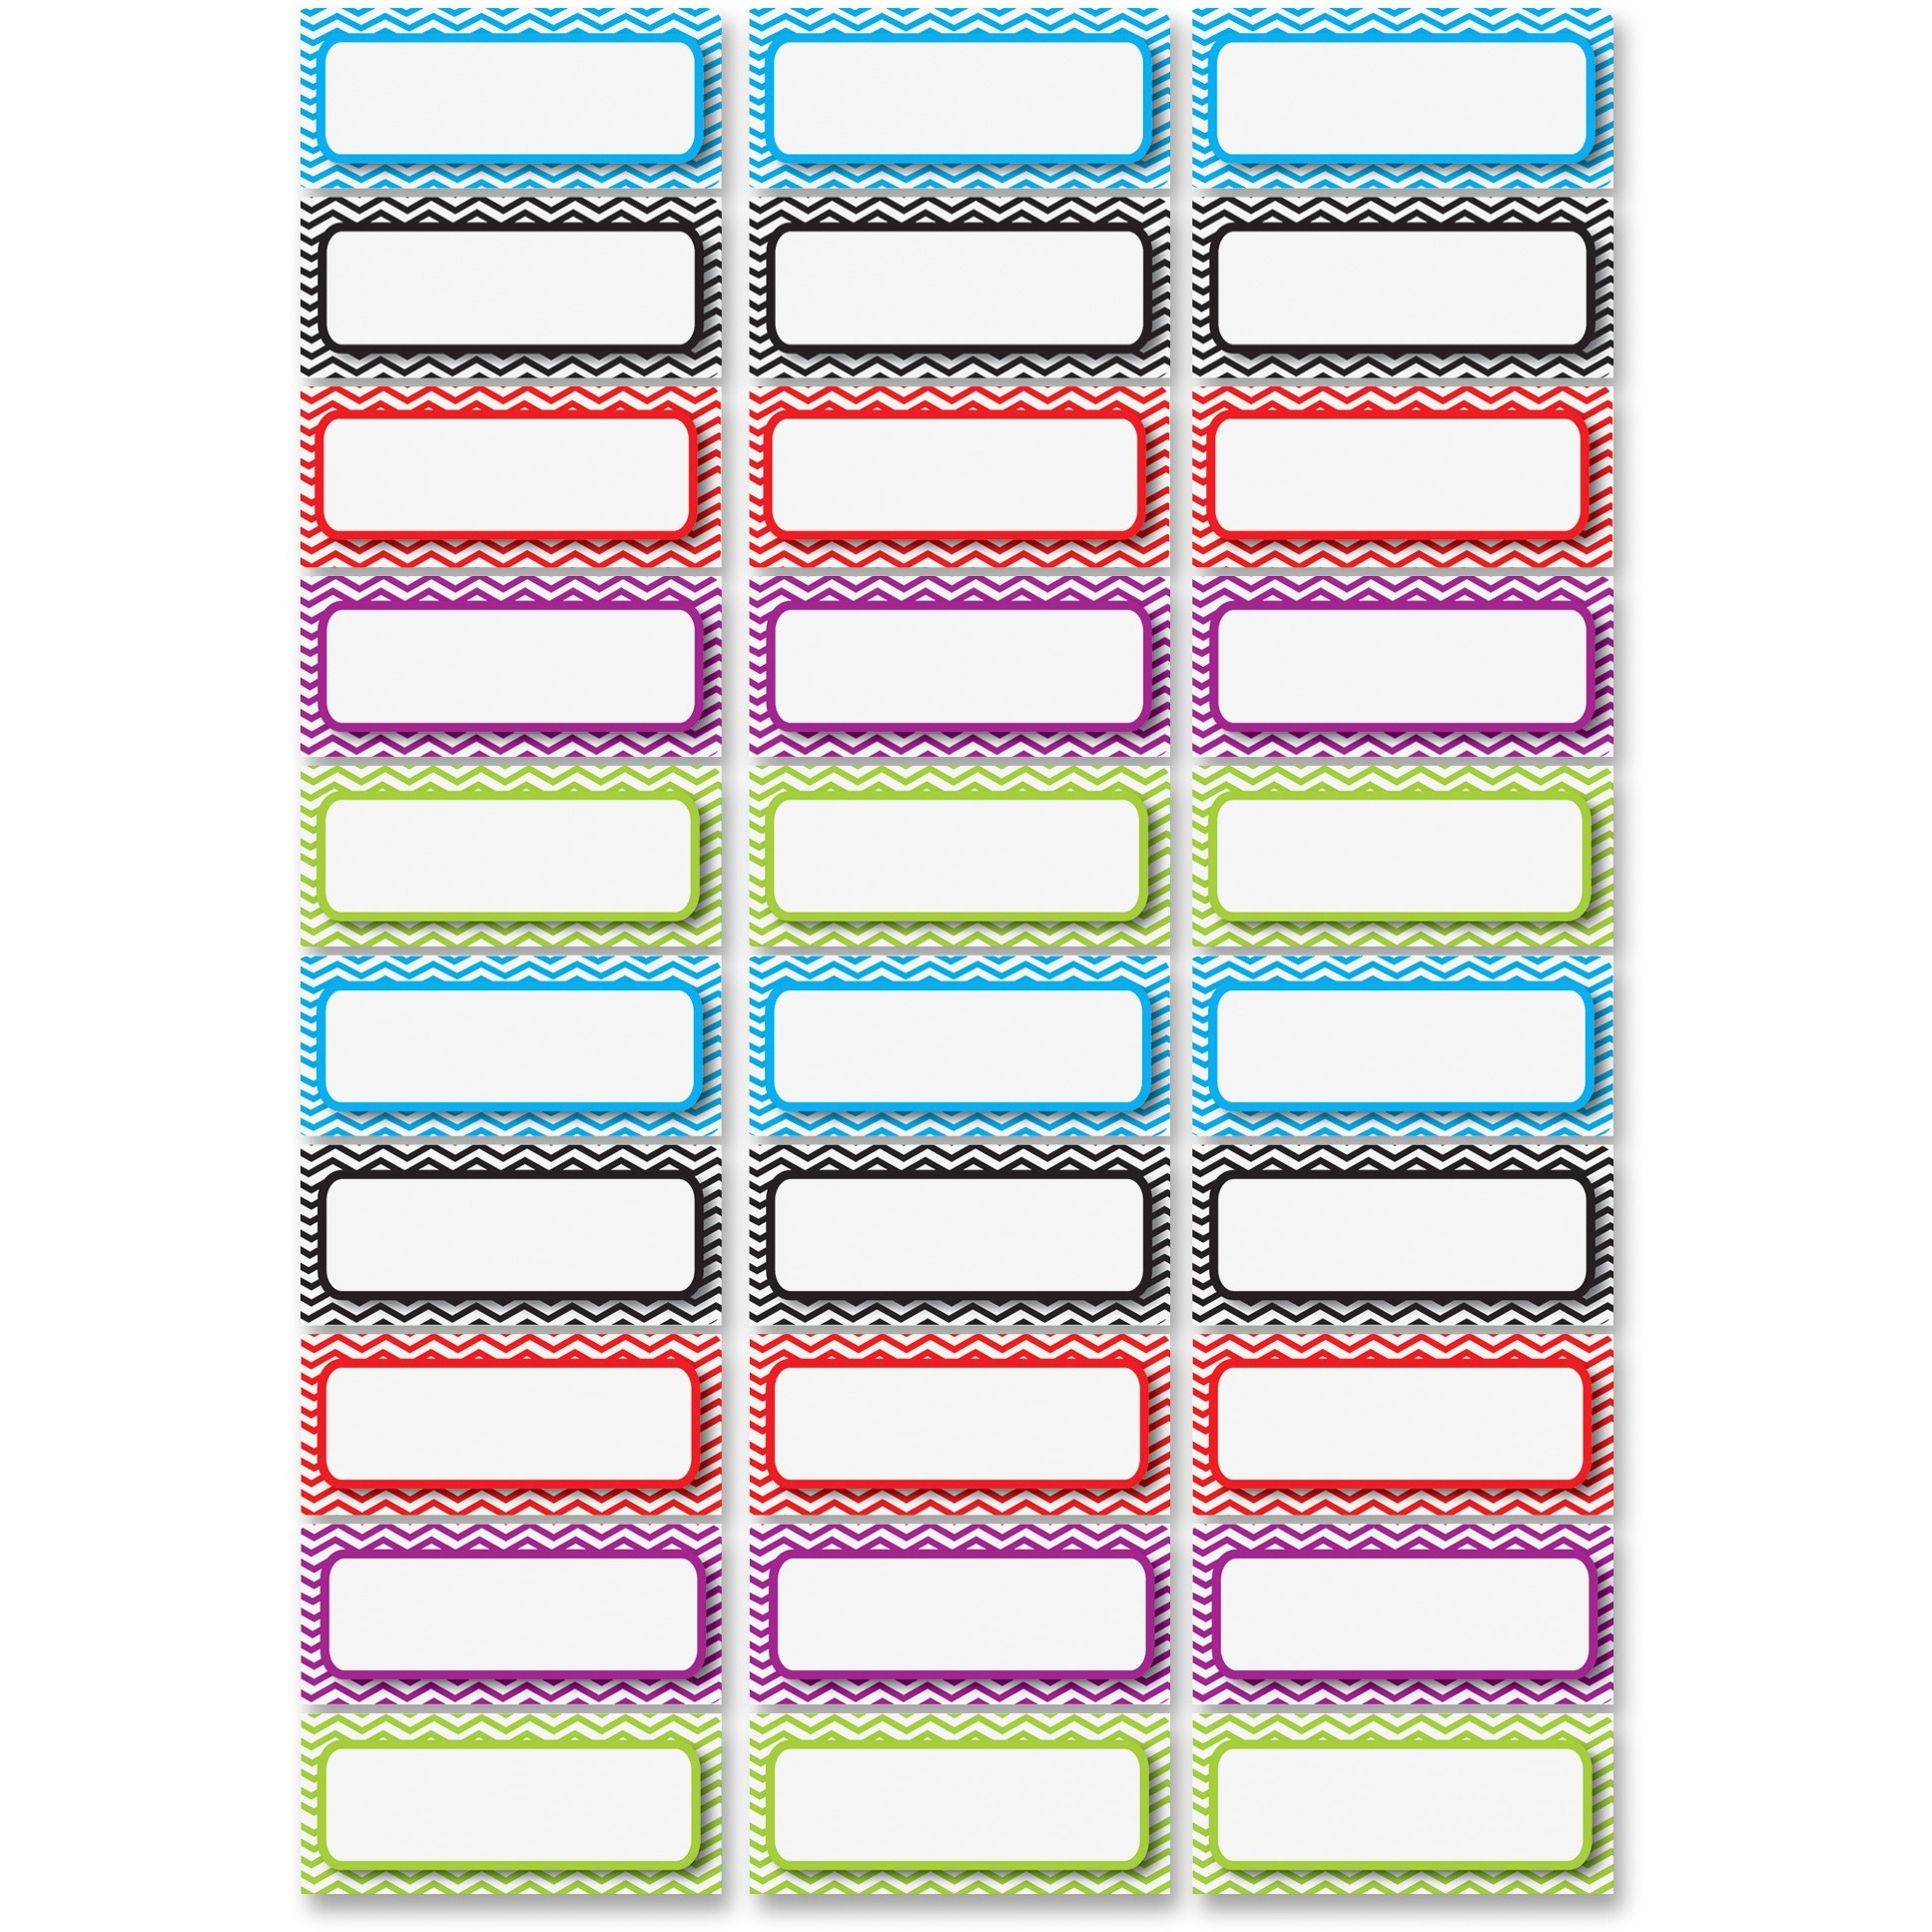 Ashley Dry Erase Chevron Nameplate Magnets, Multicolor, 1 Pack (Quantity) by Ashley Productions, Inc